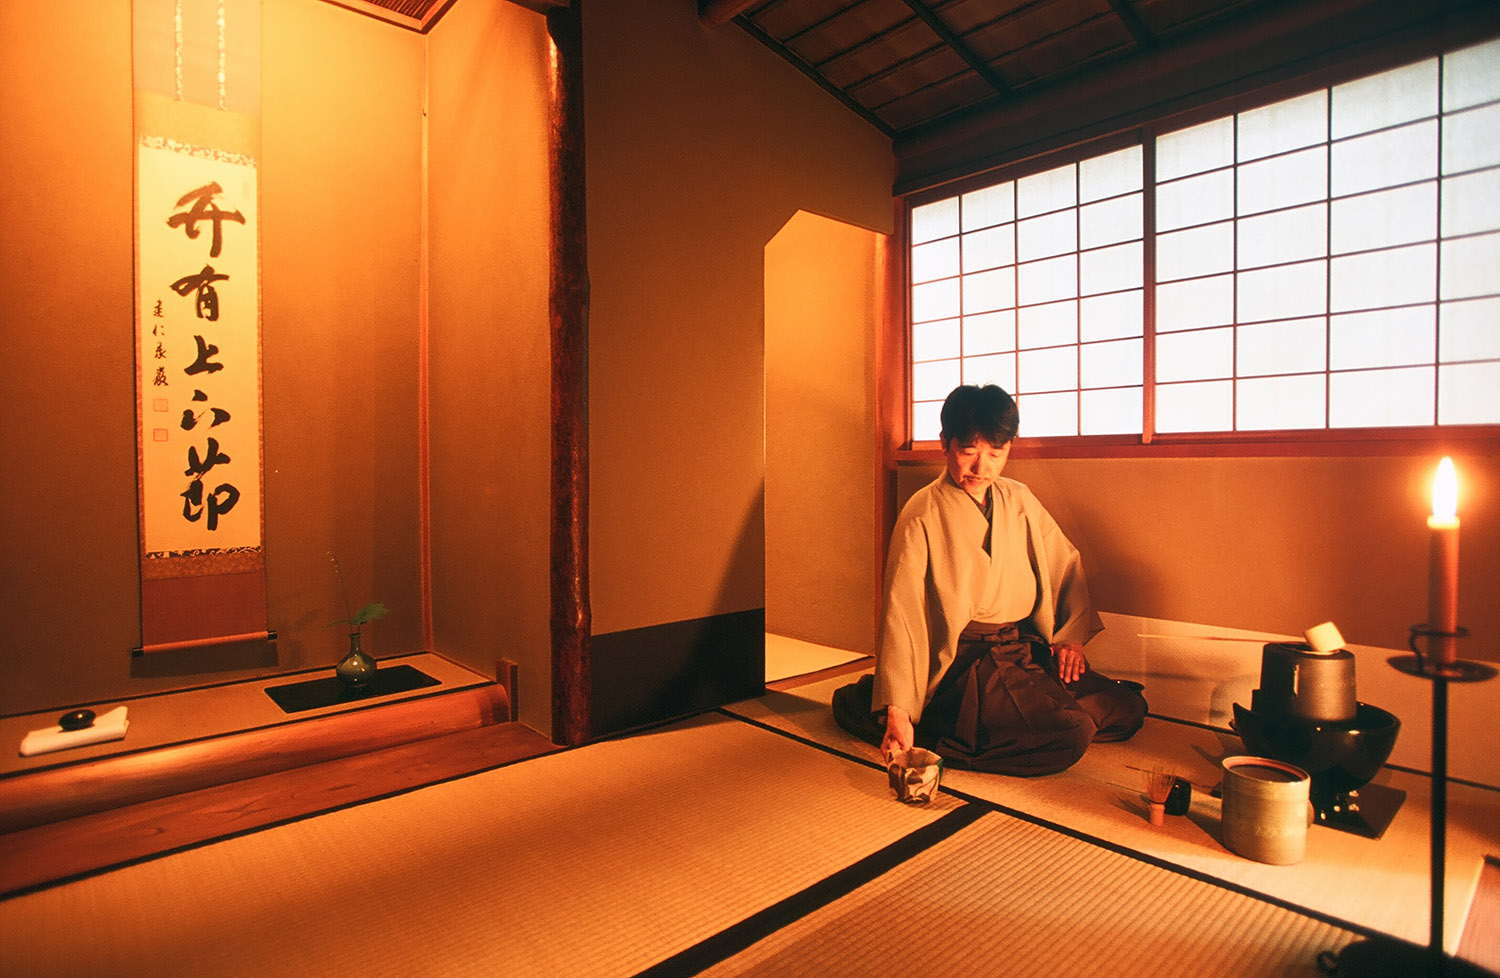 Tea ceremony (3)_VillegaMag_Masae_Hara_for_Beniya_Mukayu_Japan